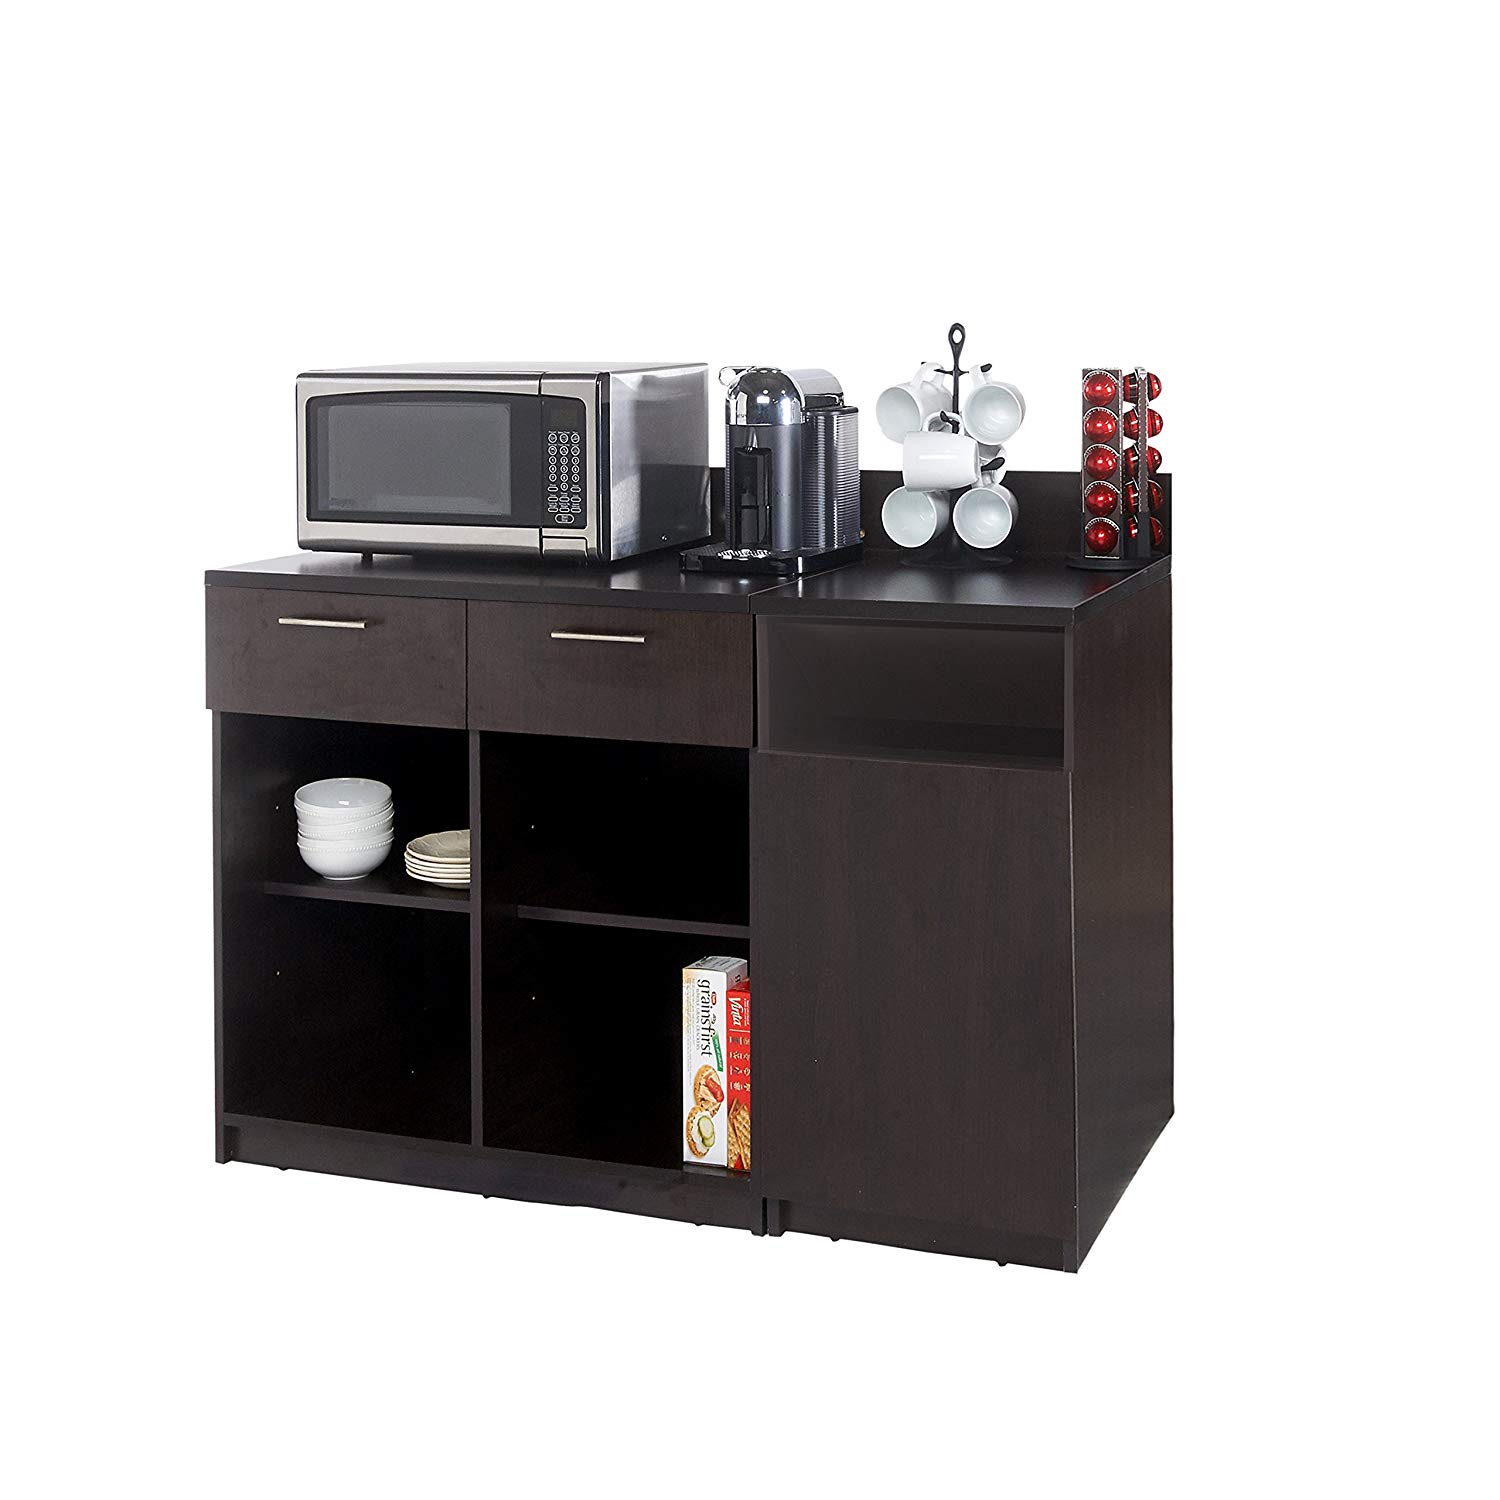 Coffee Kitchen Lunch Break Room Cabinets Model 4282 BREAKTIME 2 piece group Color Espresso - Factory Assembled (NOT RTA) Furniture Items ONLY.